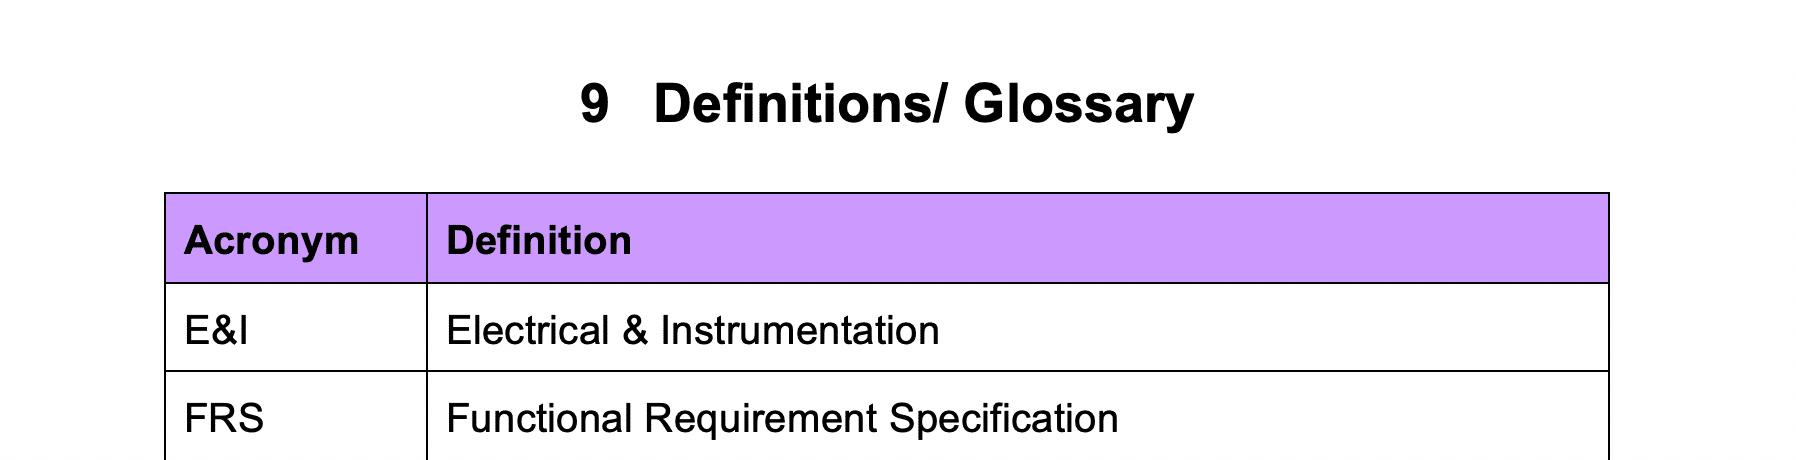 Definitions: Glossary GetReskilled